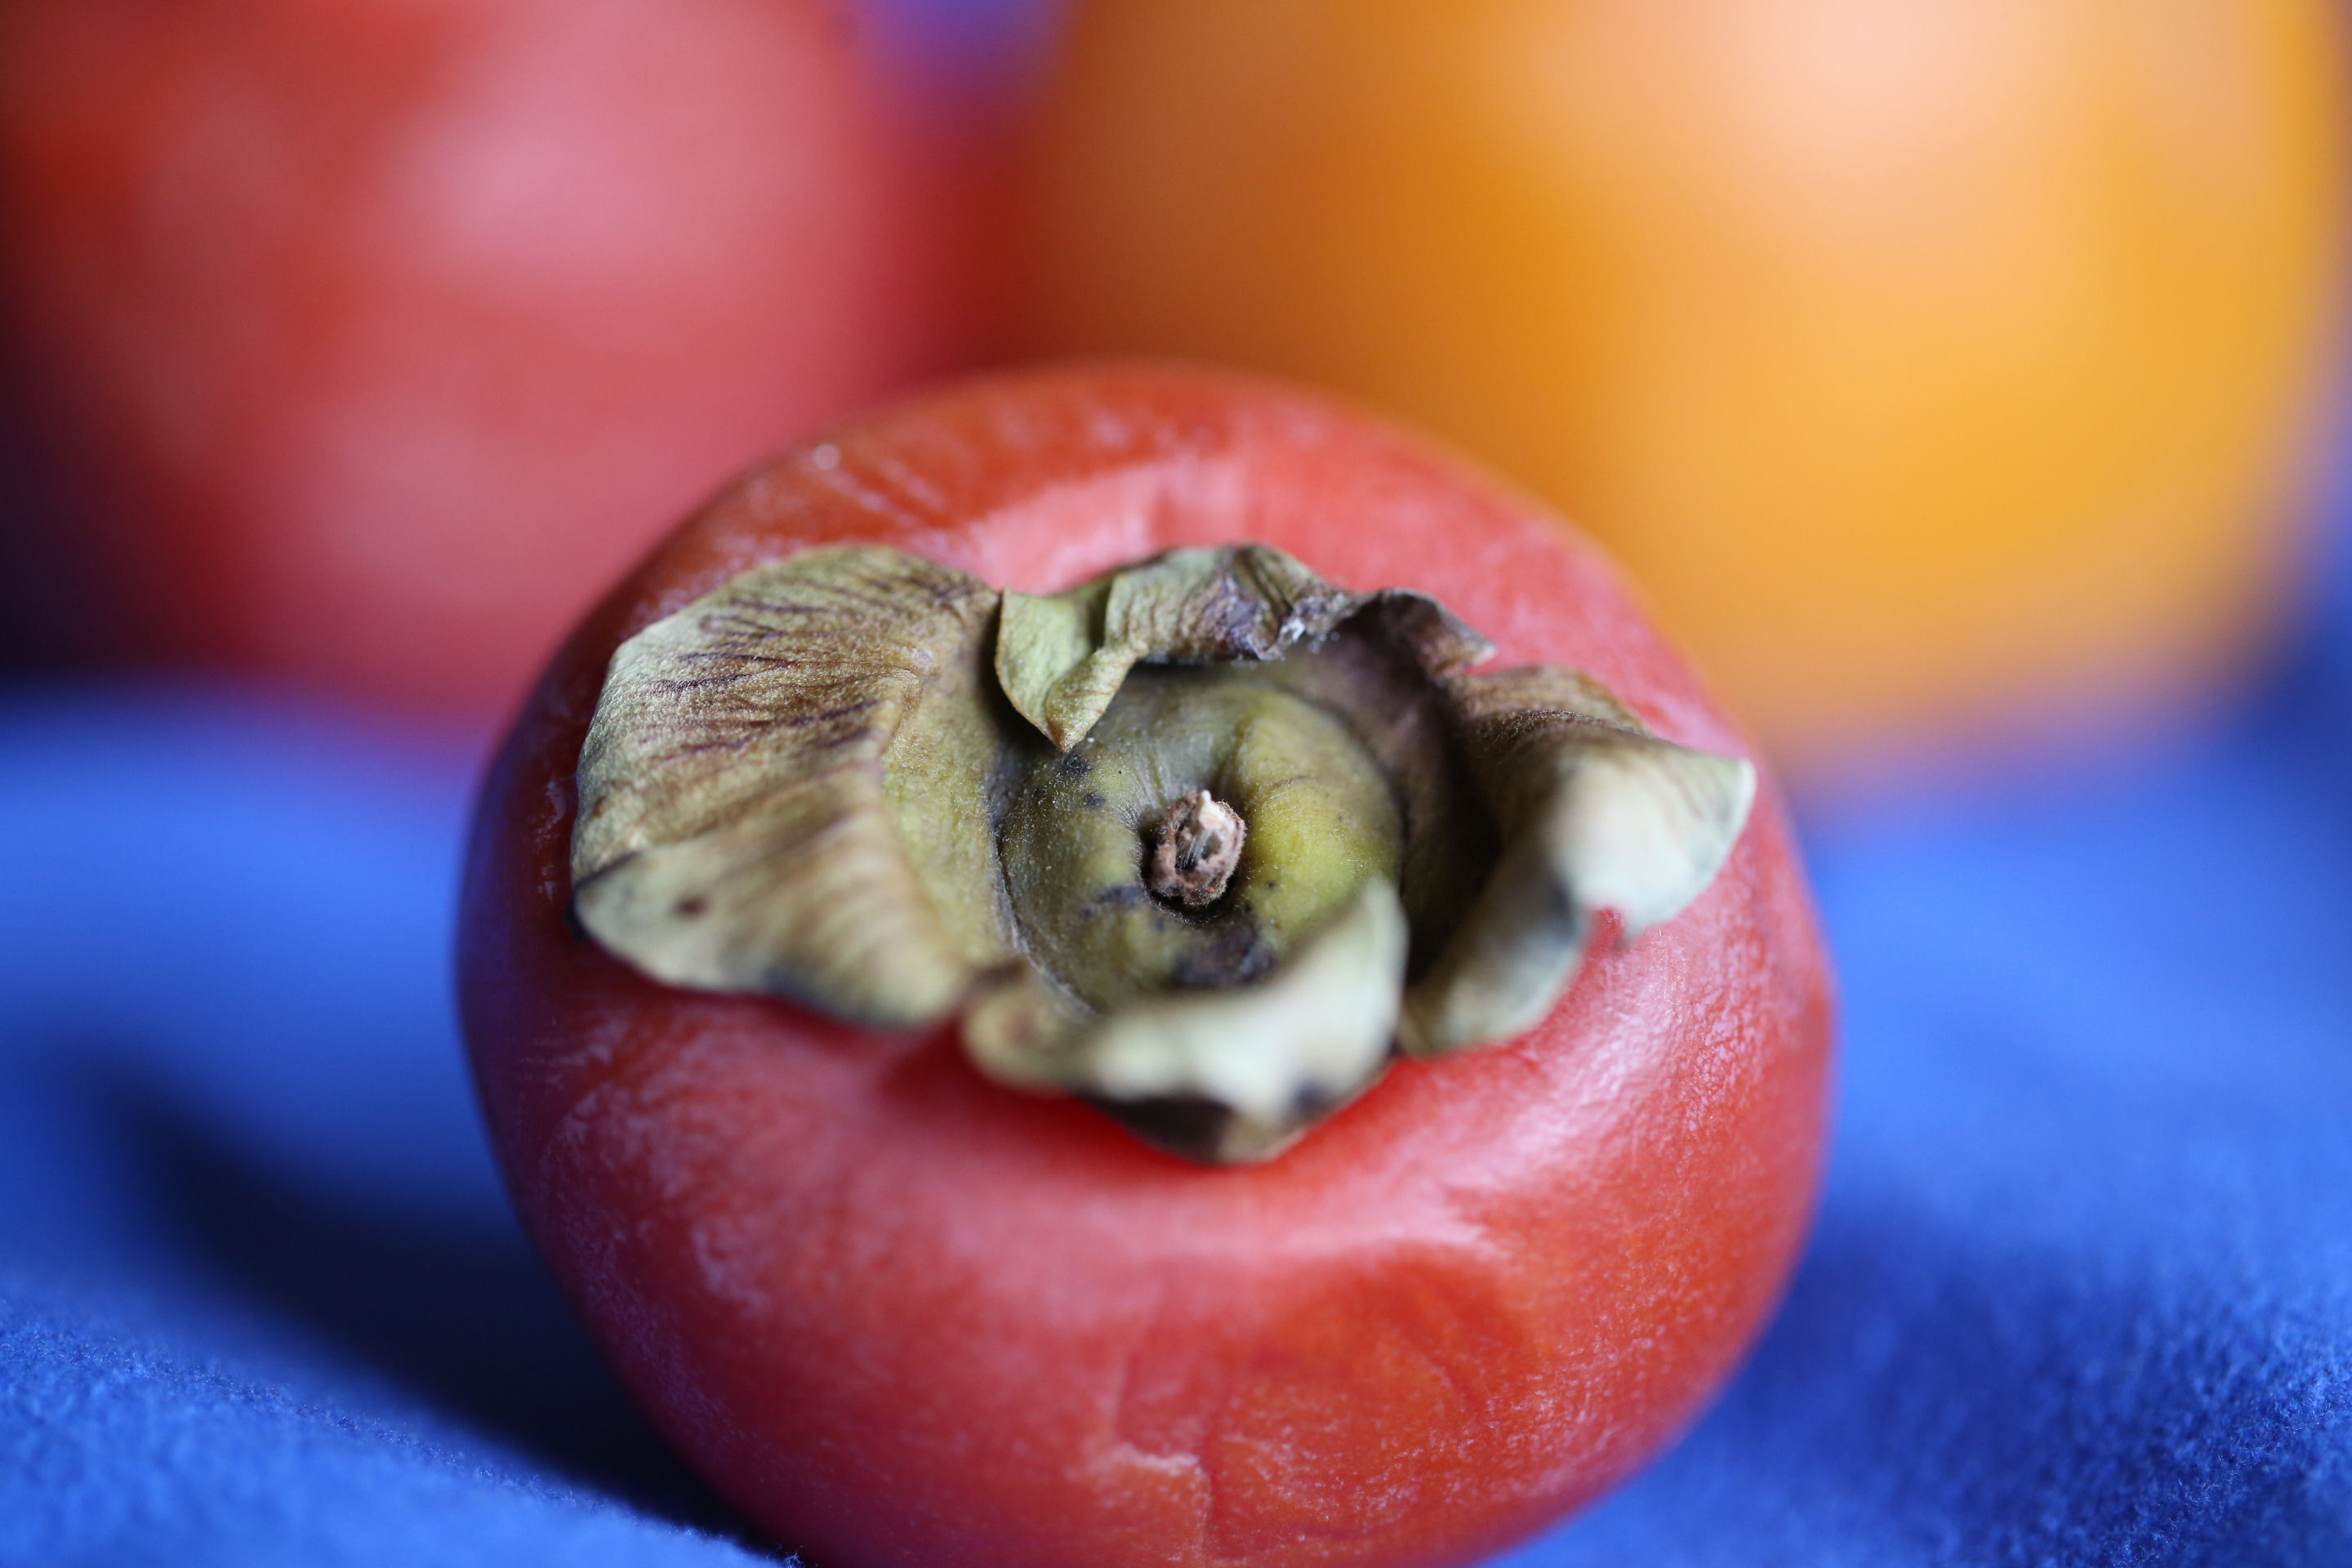 P for persimmon